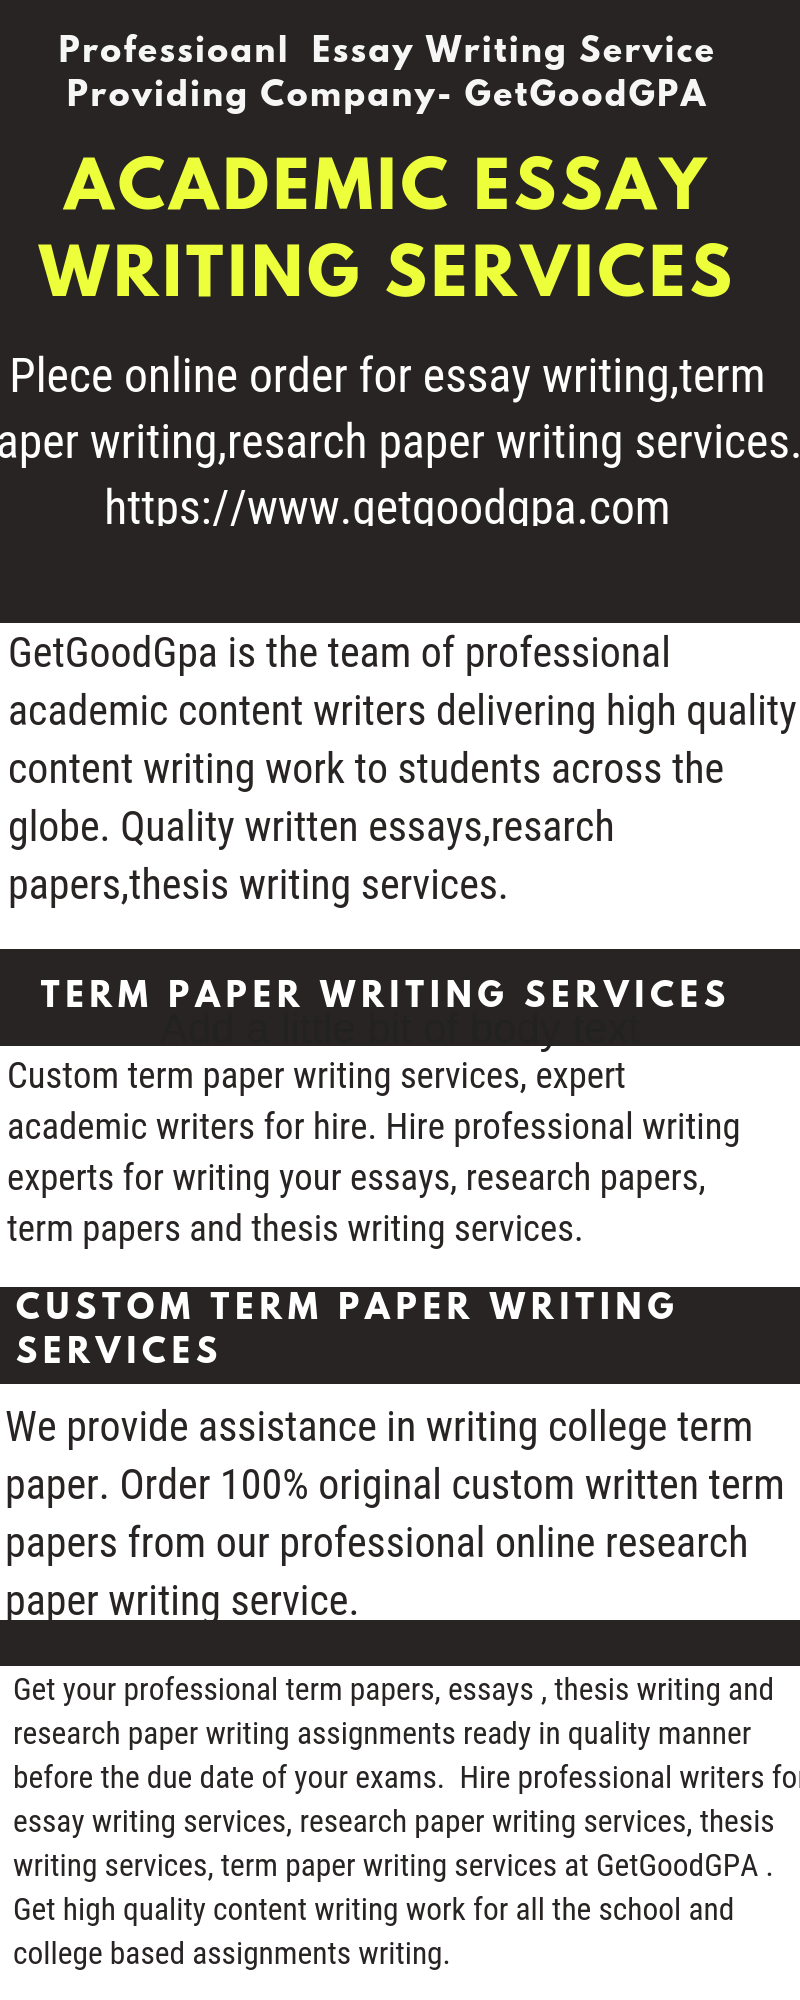 Essay On Honor  Good Essay Titles Examples also Medical Marijuana Persuasive Essay  Research Paper Custom Term Papers And  Museumlegs Introduction To Romeo And Juliet Essay